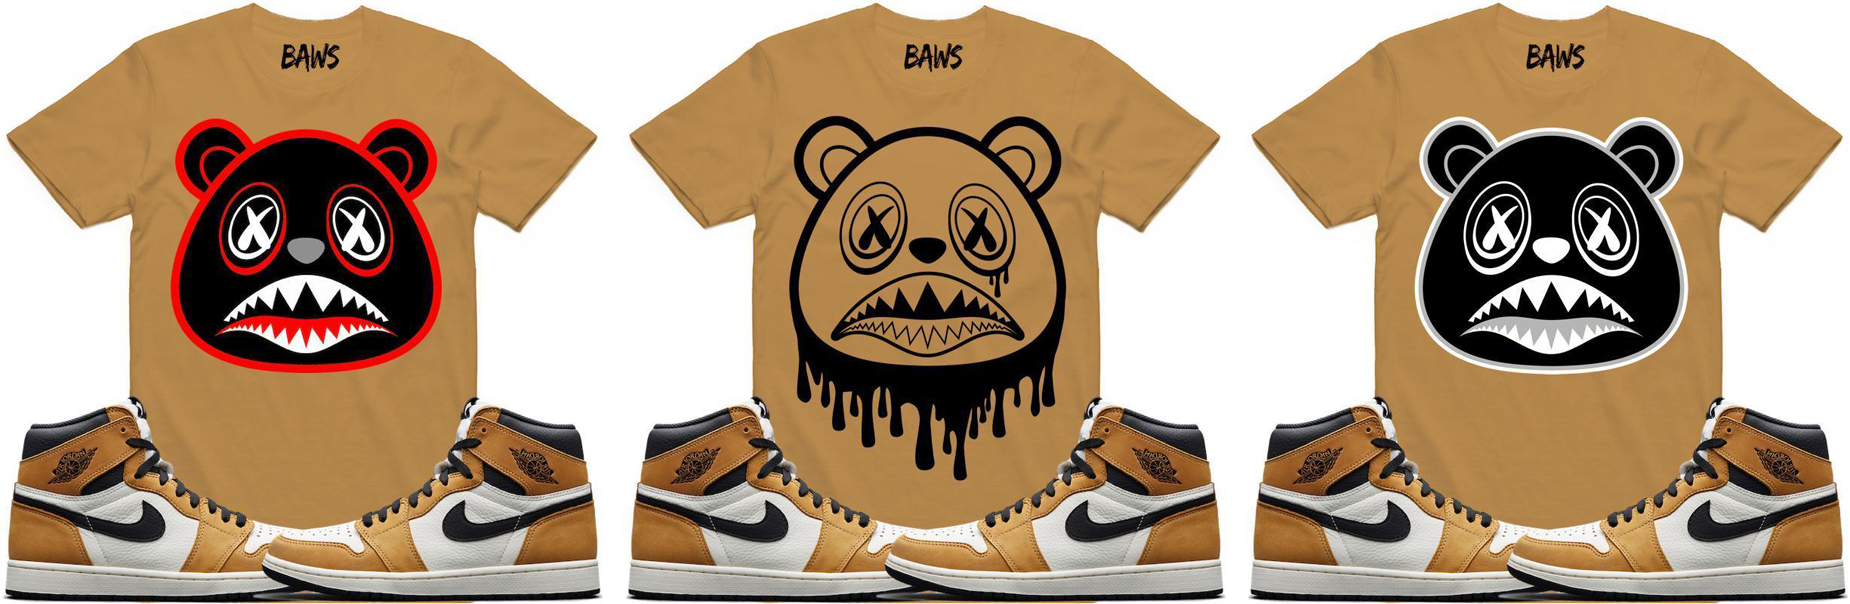 jordan-1-rookie-of-the-year-sneaker-tee-shirts-baws